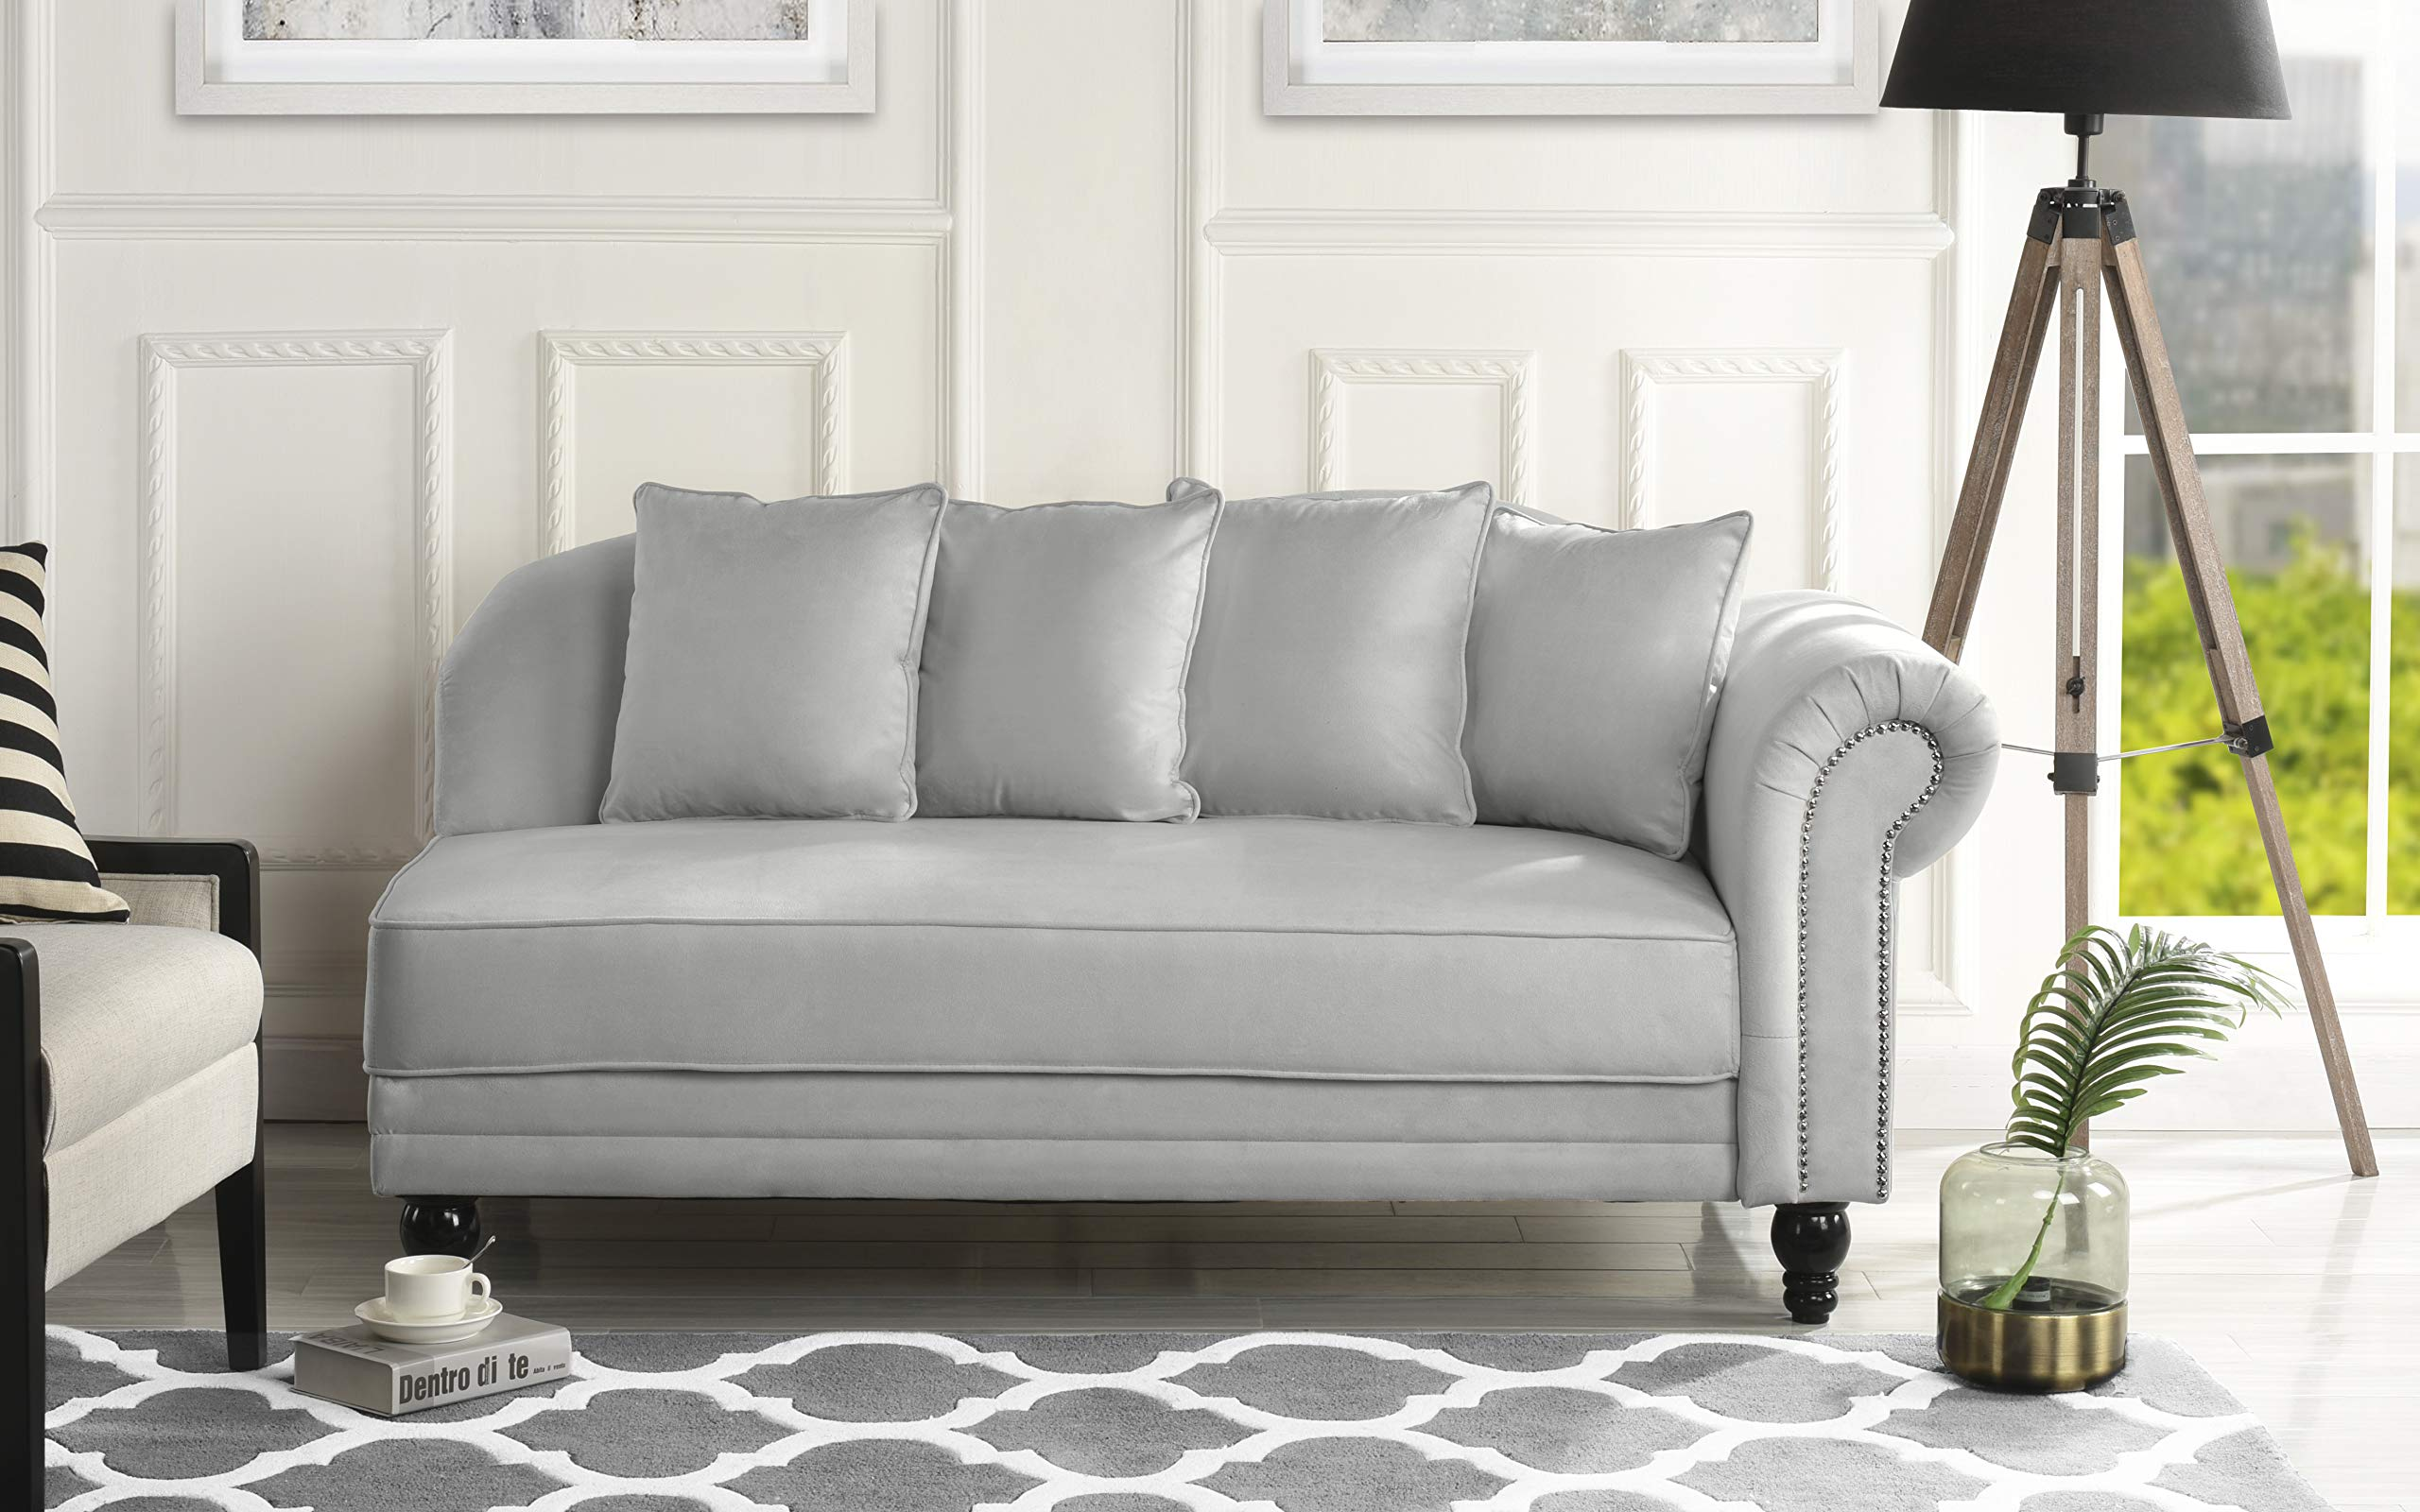 Sofamania Large Classic Velvet Fabric Living Room Chaise Lounge with Nailhead Trim (Light Grey) by Sofamania